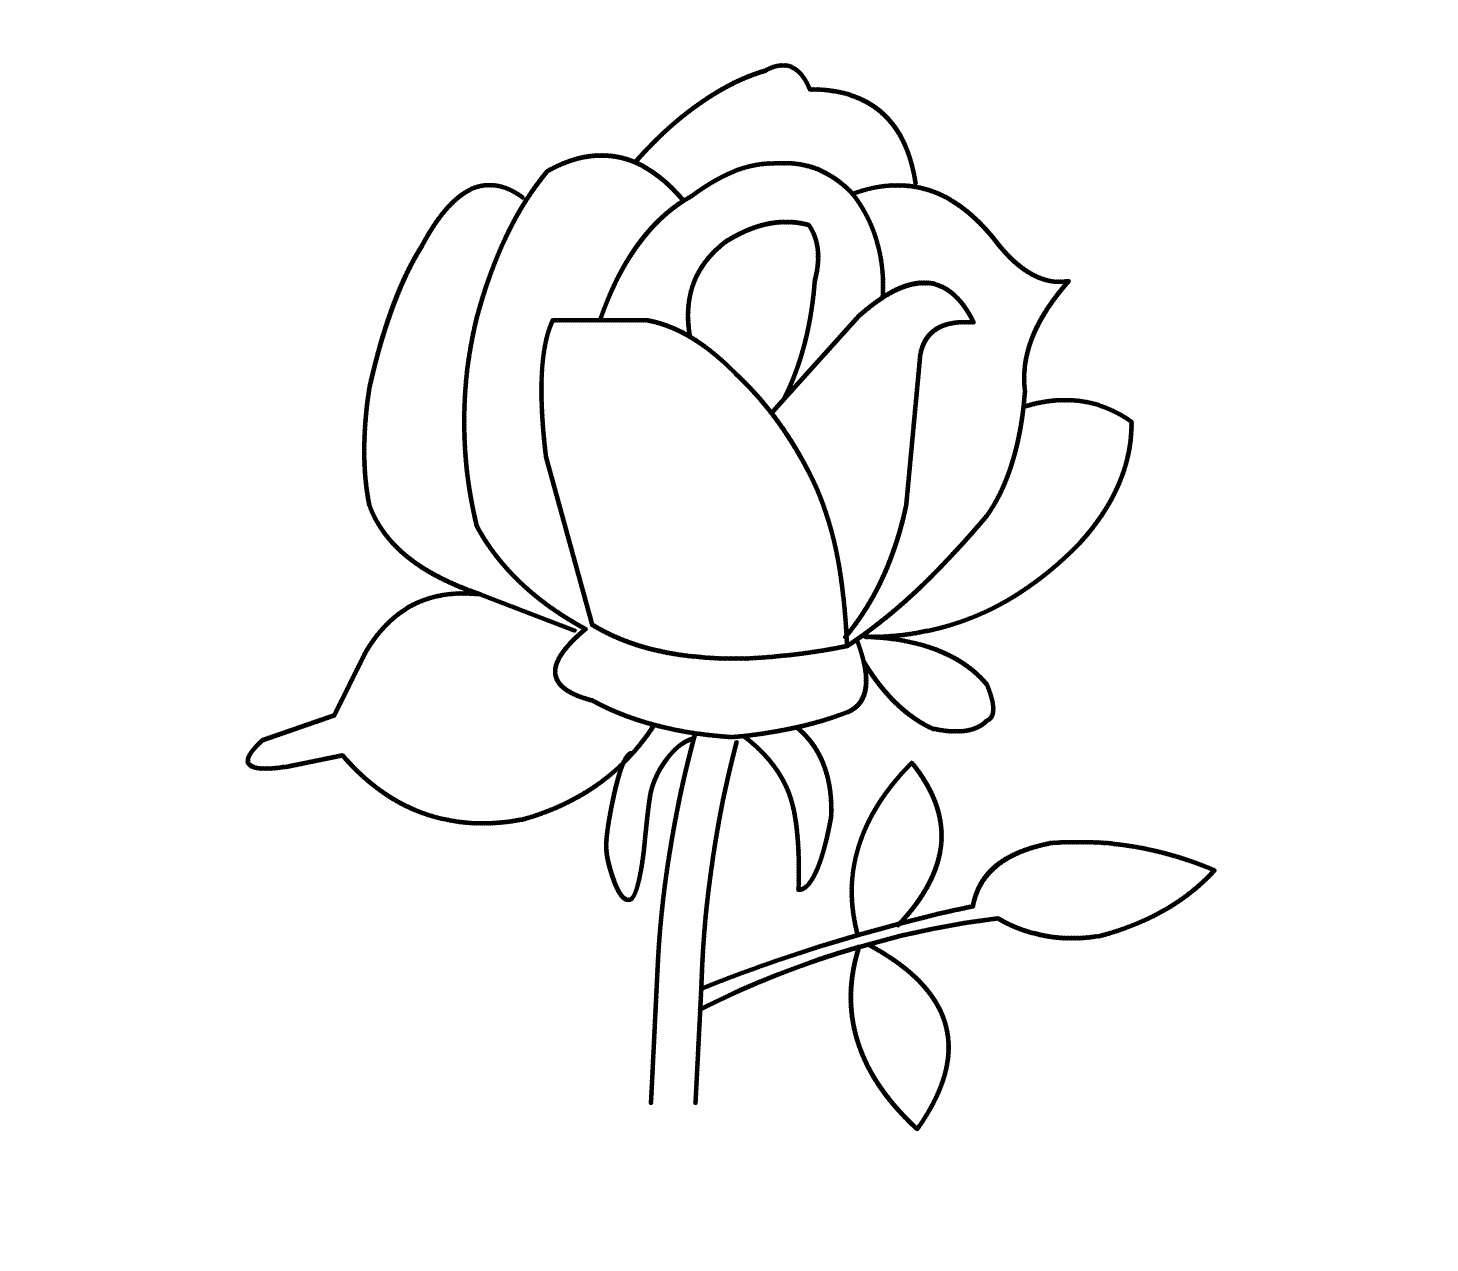 a coloring page of a rose free printable roses coloring pages for kids page of a coloring rose a